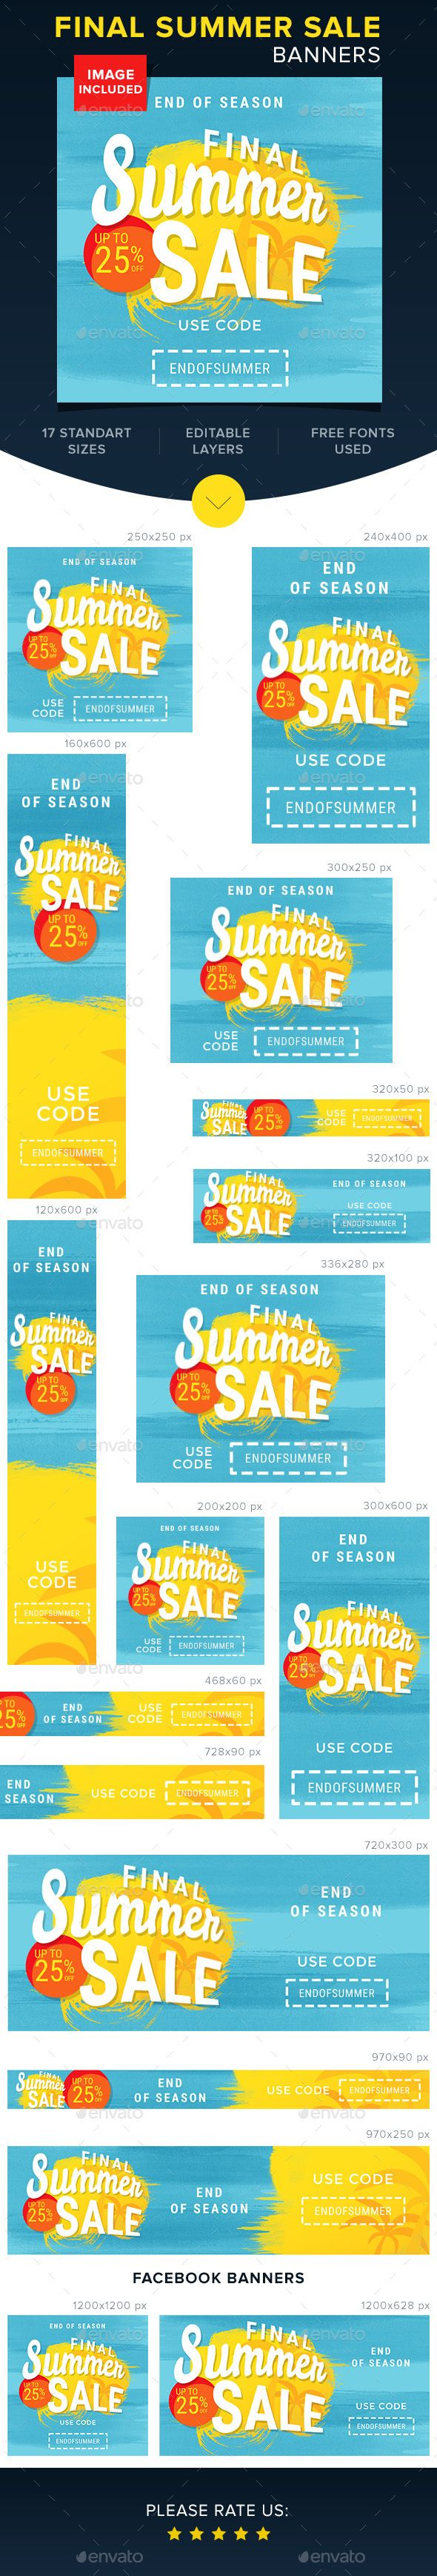 The 25 best web banner design ideas on pinterest web banners final summer sale banners pronofoot35fo Choice Image